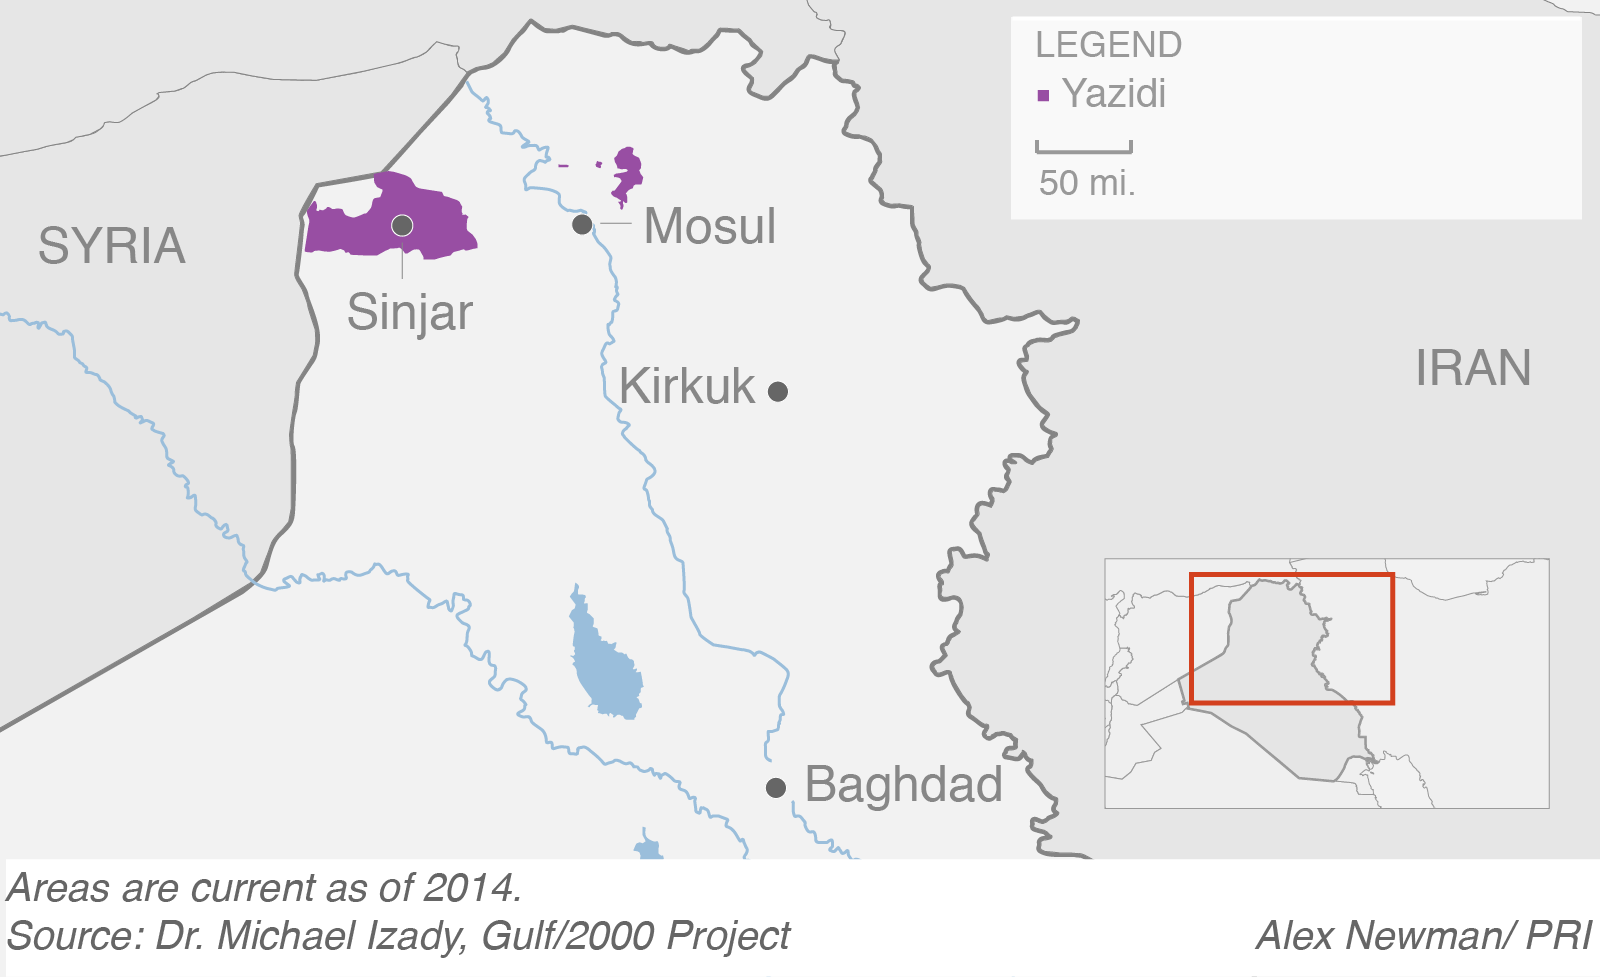 Areas where Yazidi people live